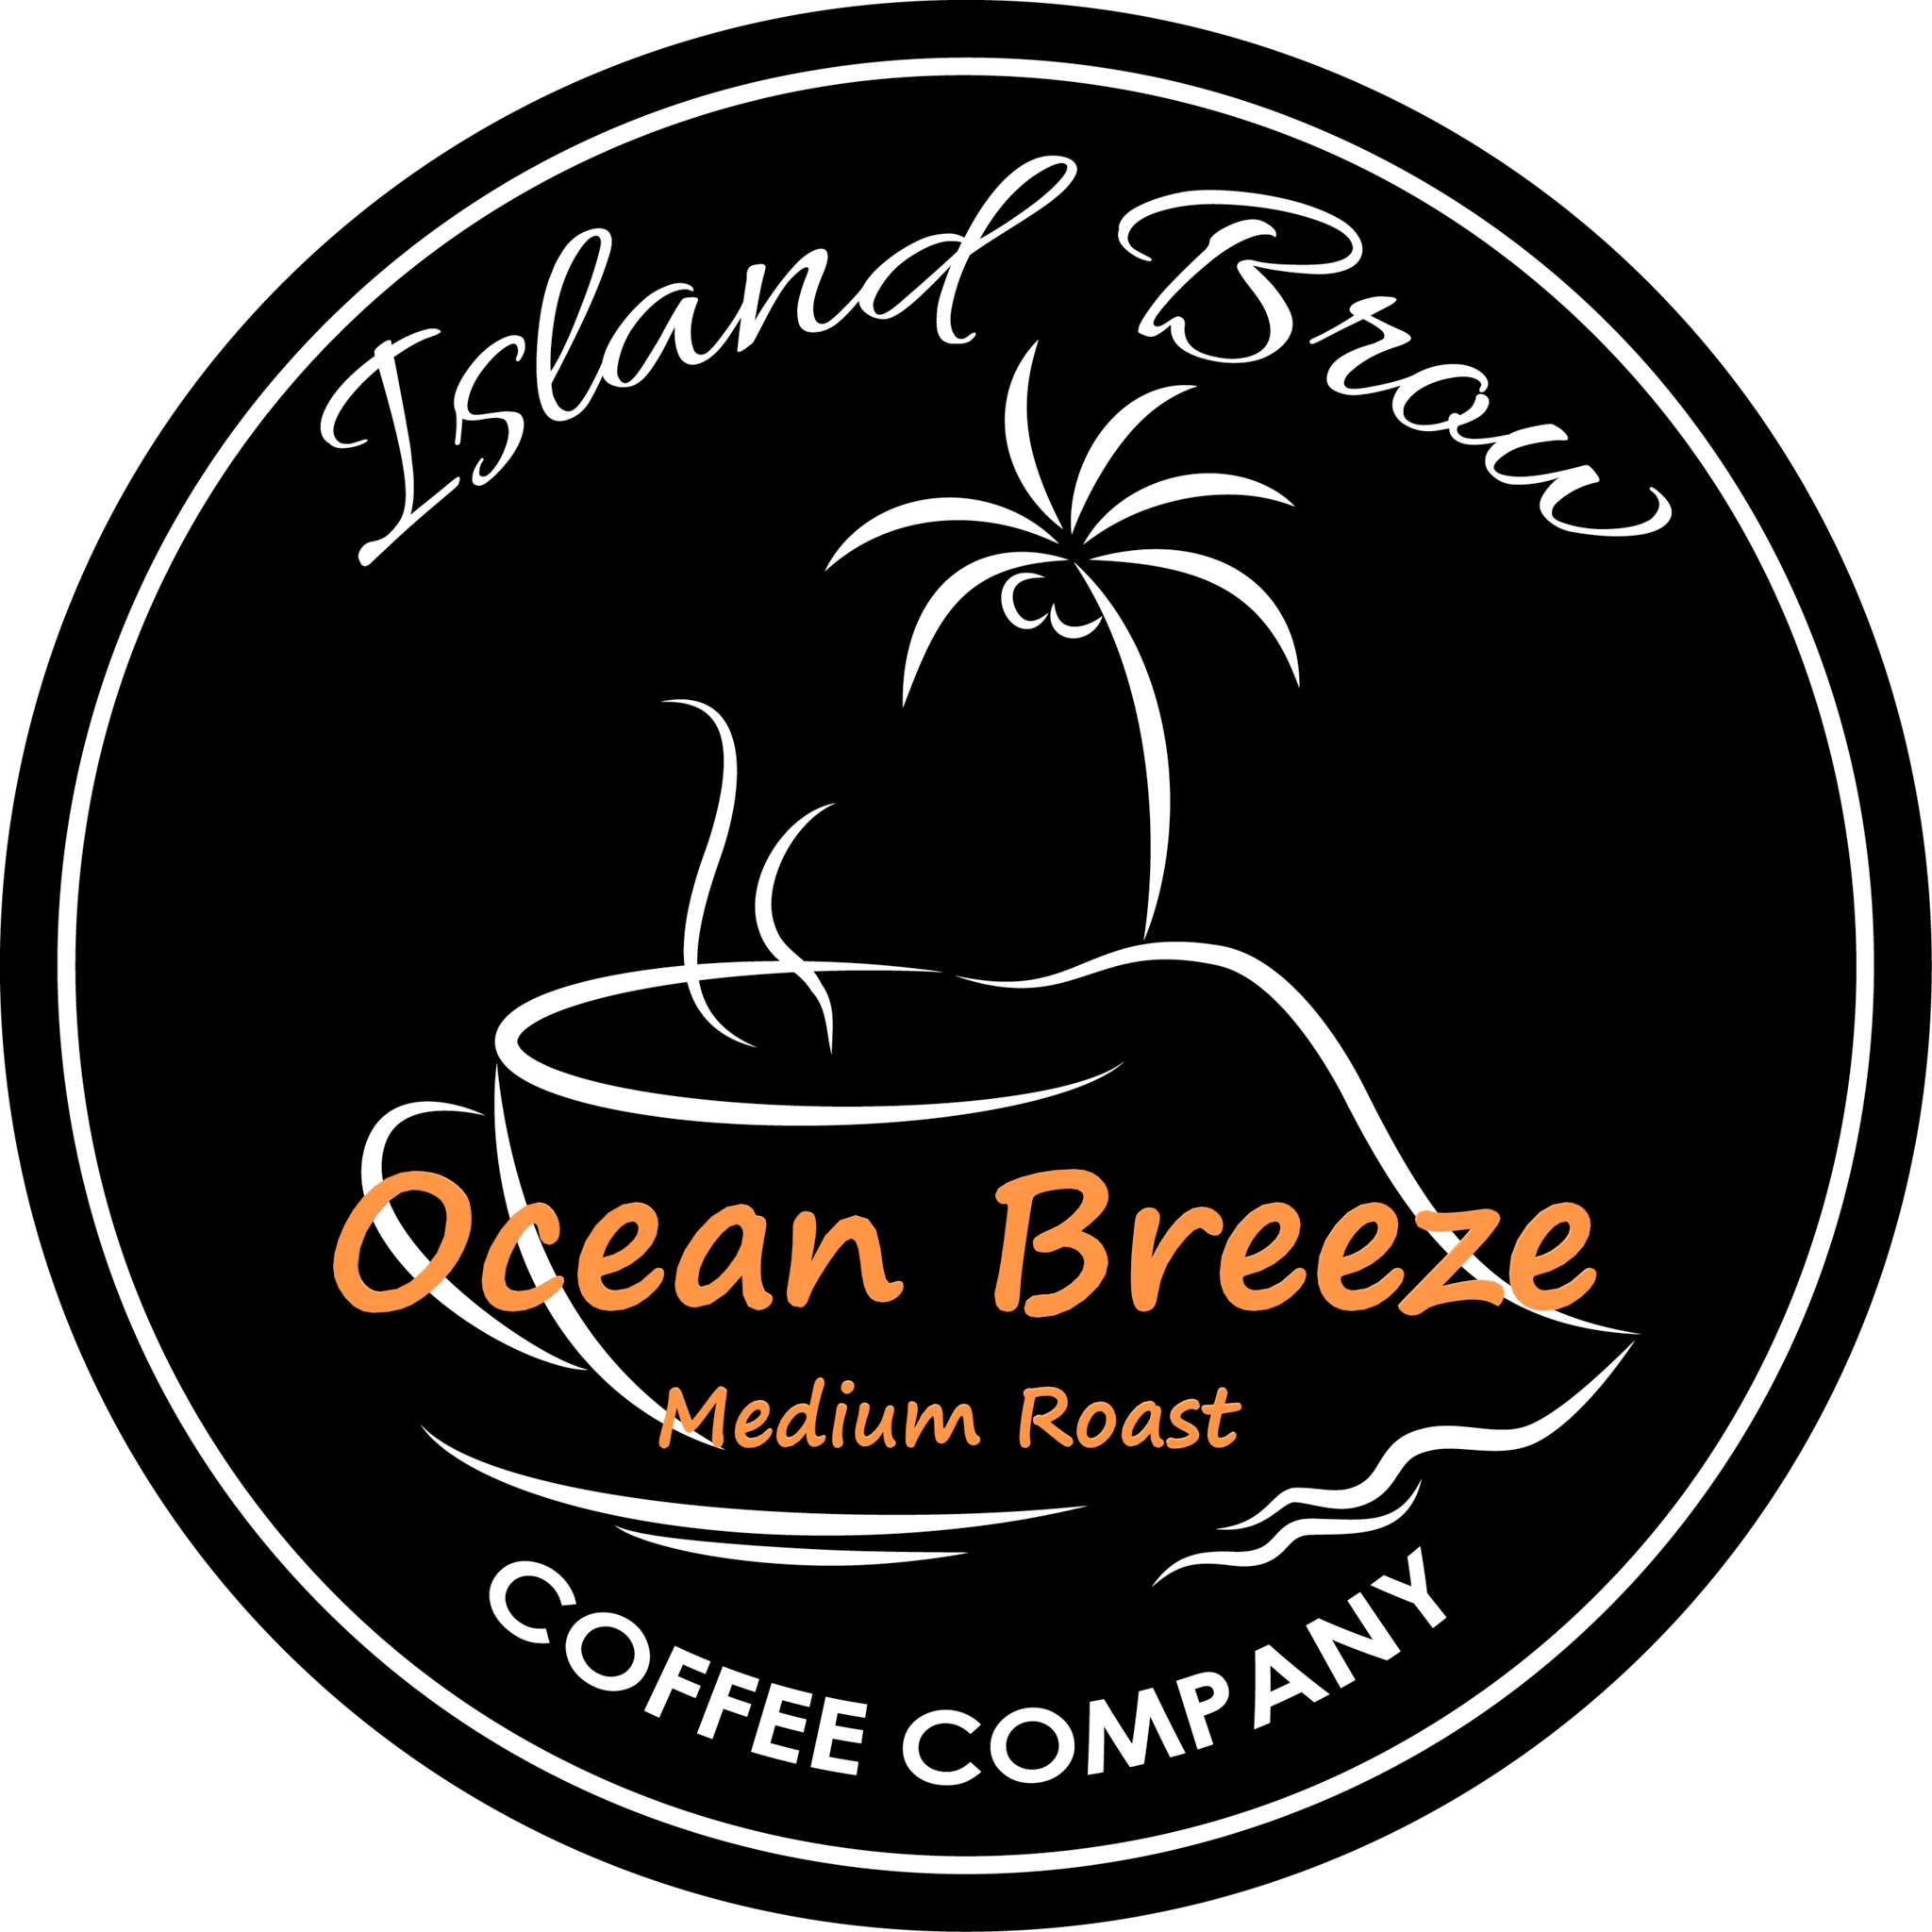 Ocean Breeze from Island Brow Coffee Company